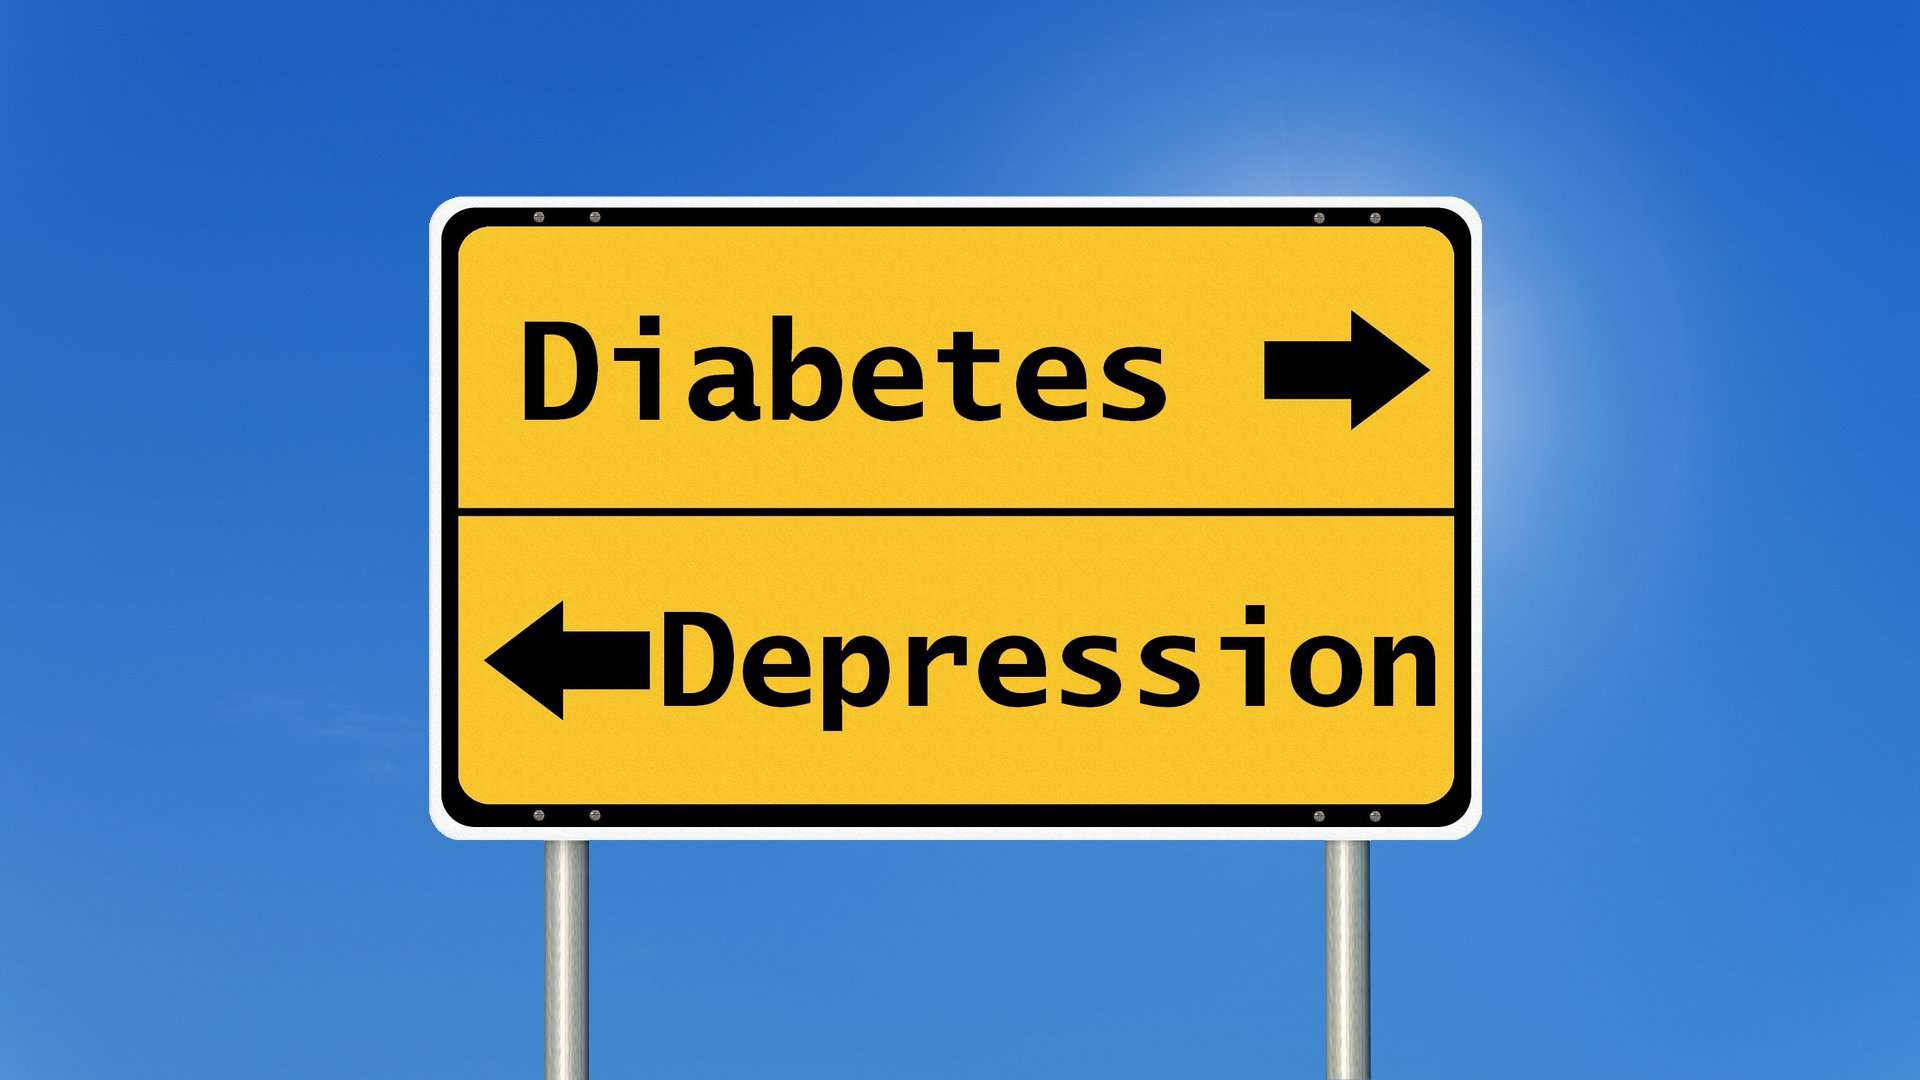 Diabetes mellitus und Depression Schild